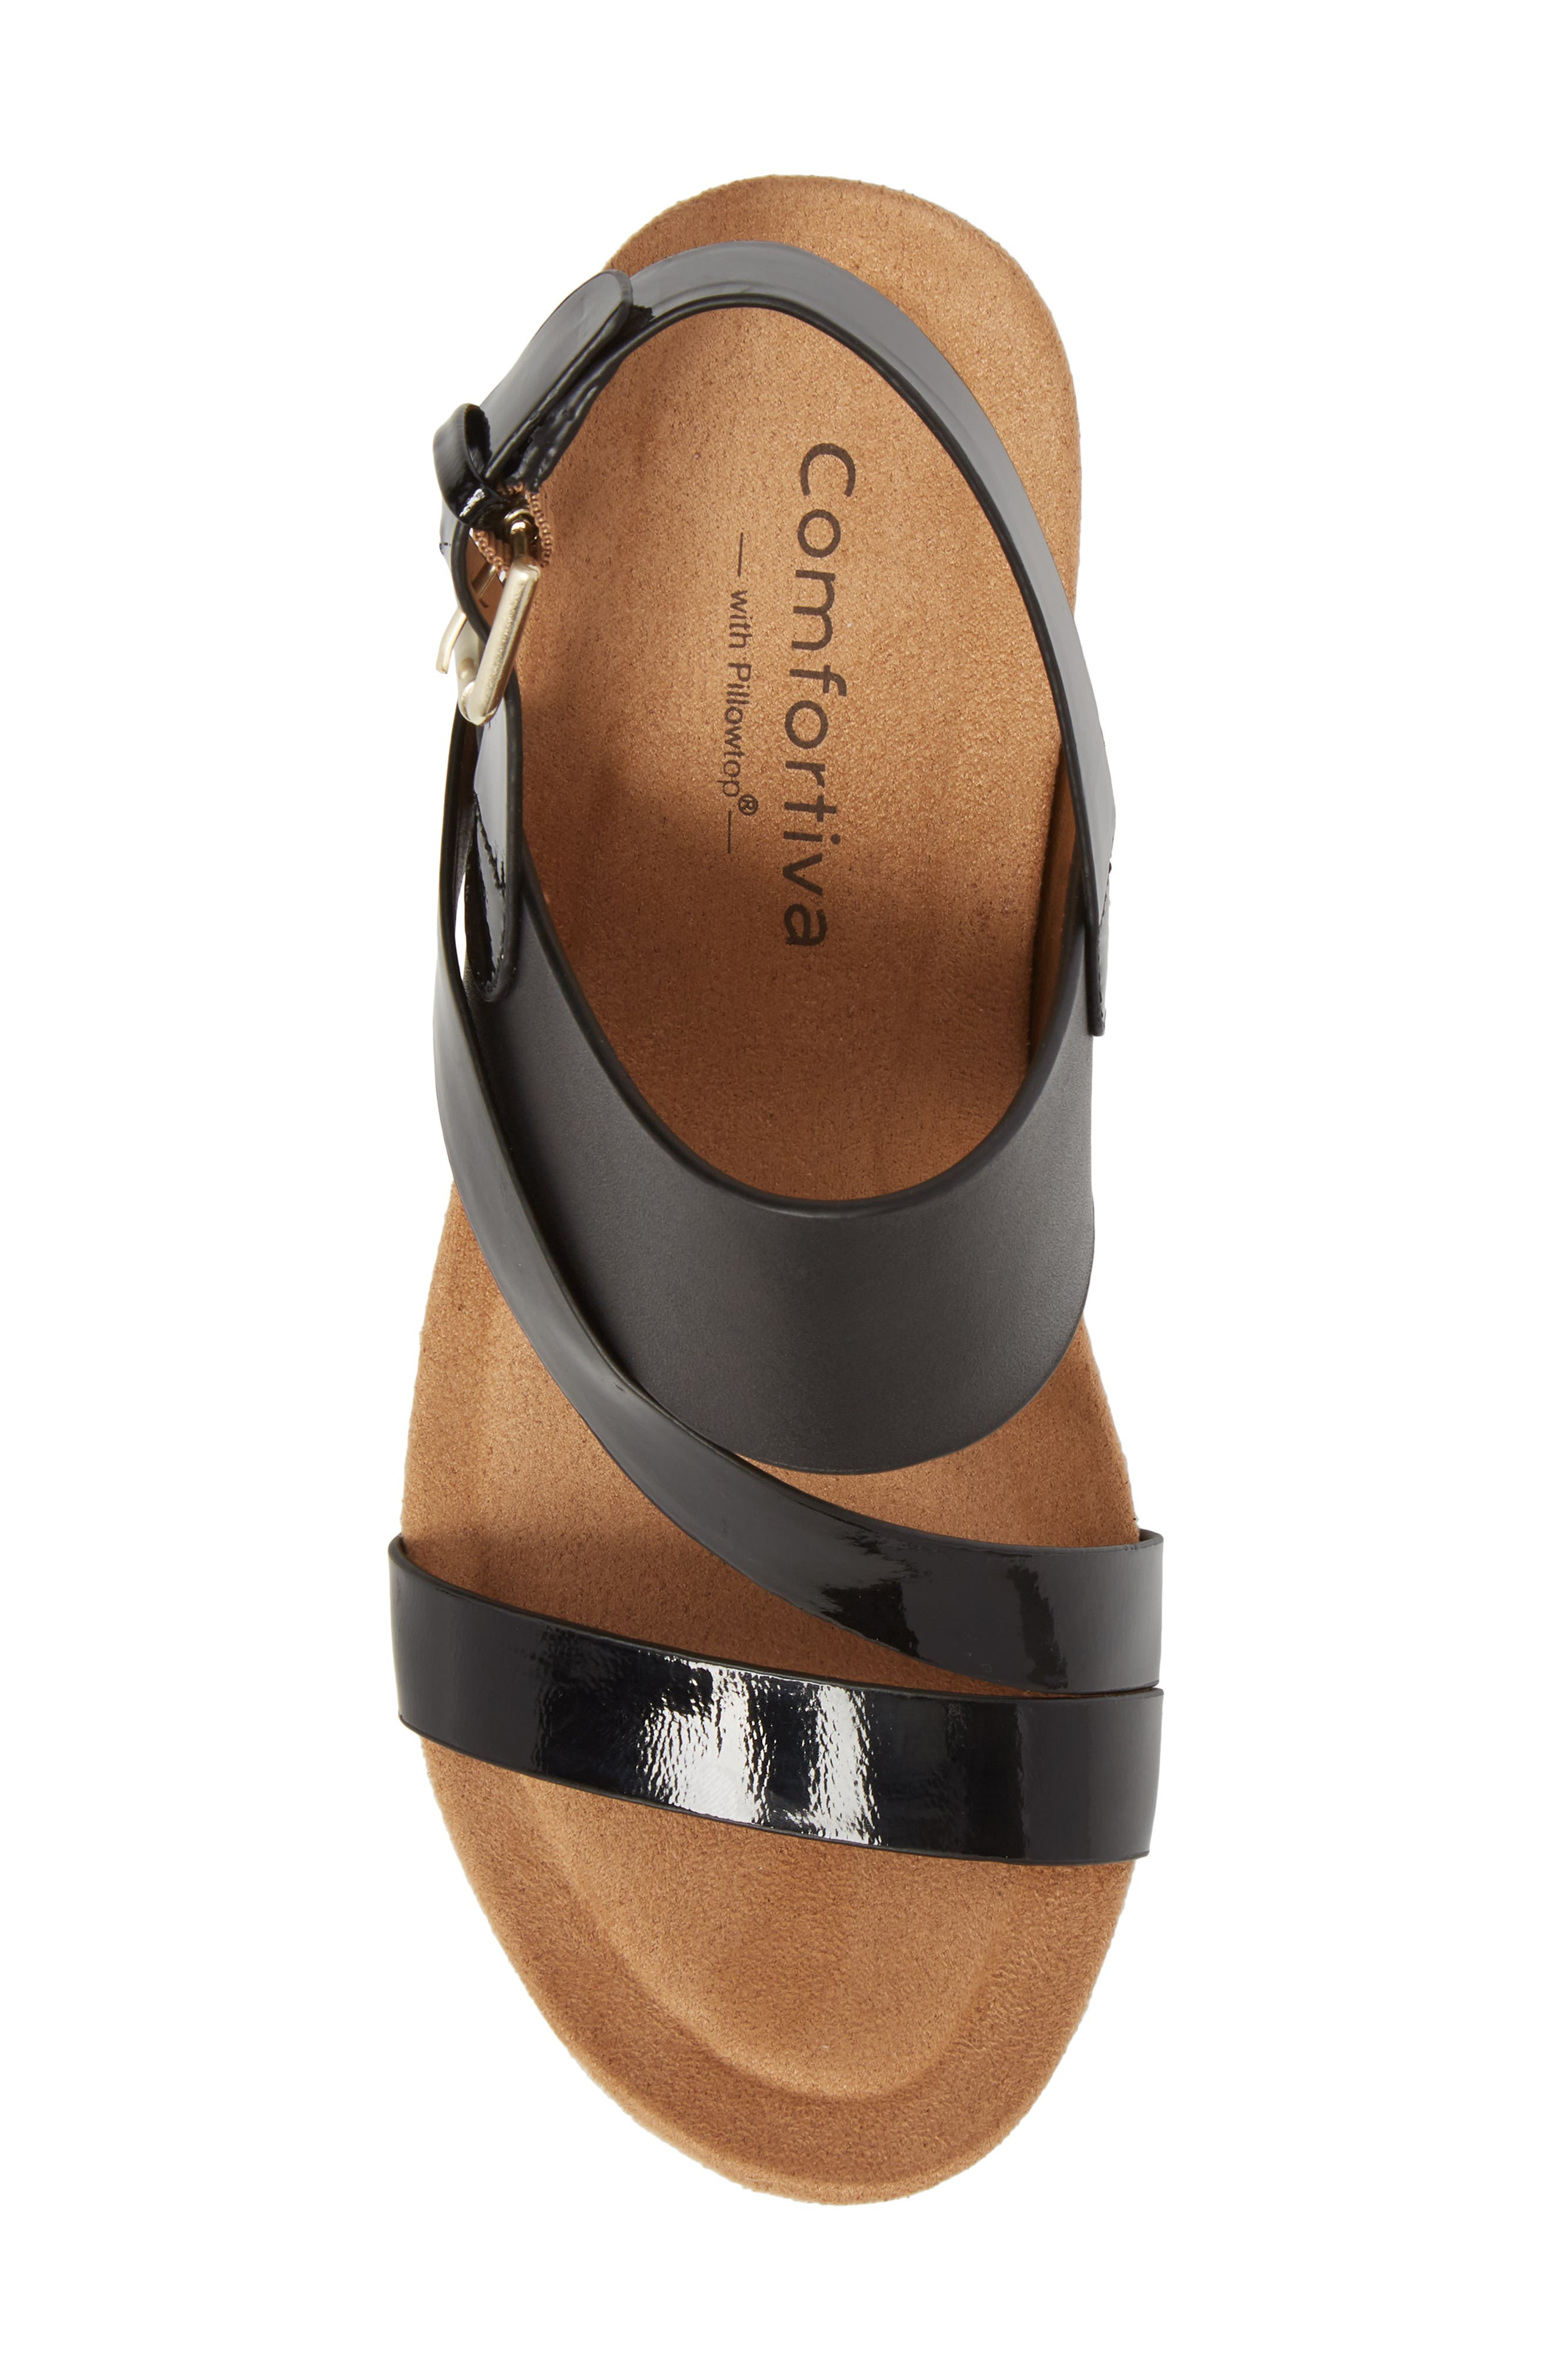 Vail Wedge Sandal,                             Alternate thumbnail 5, color,                             Black Leather